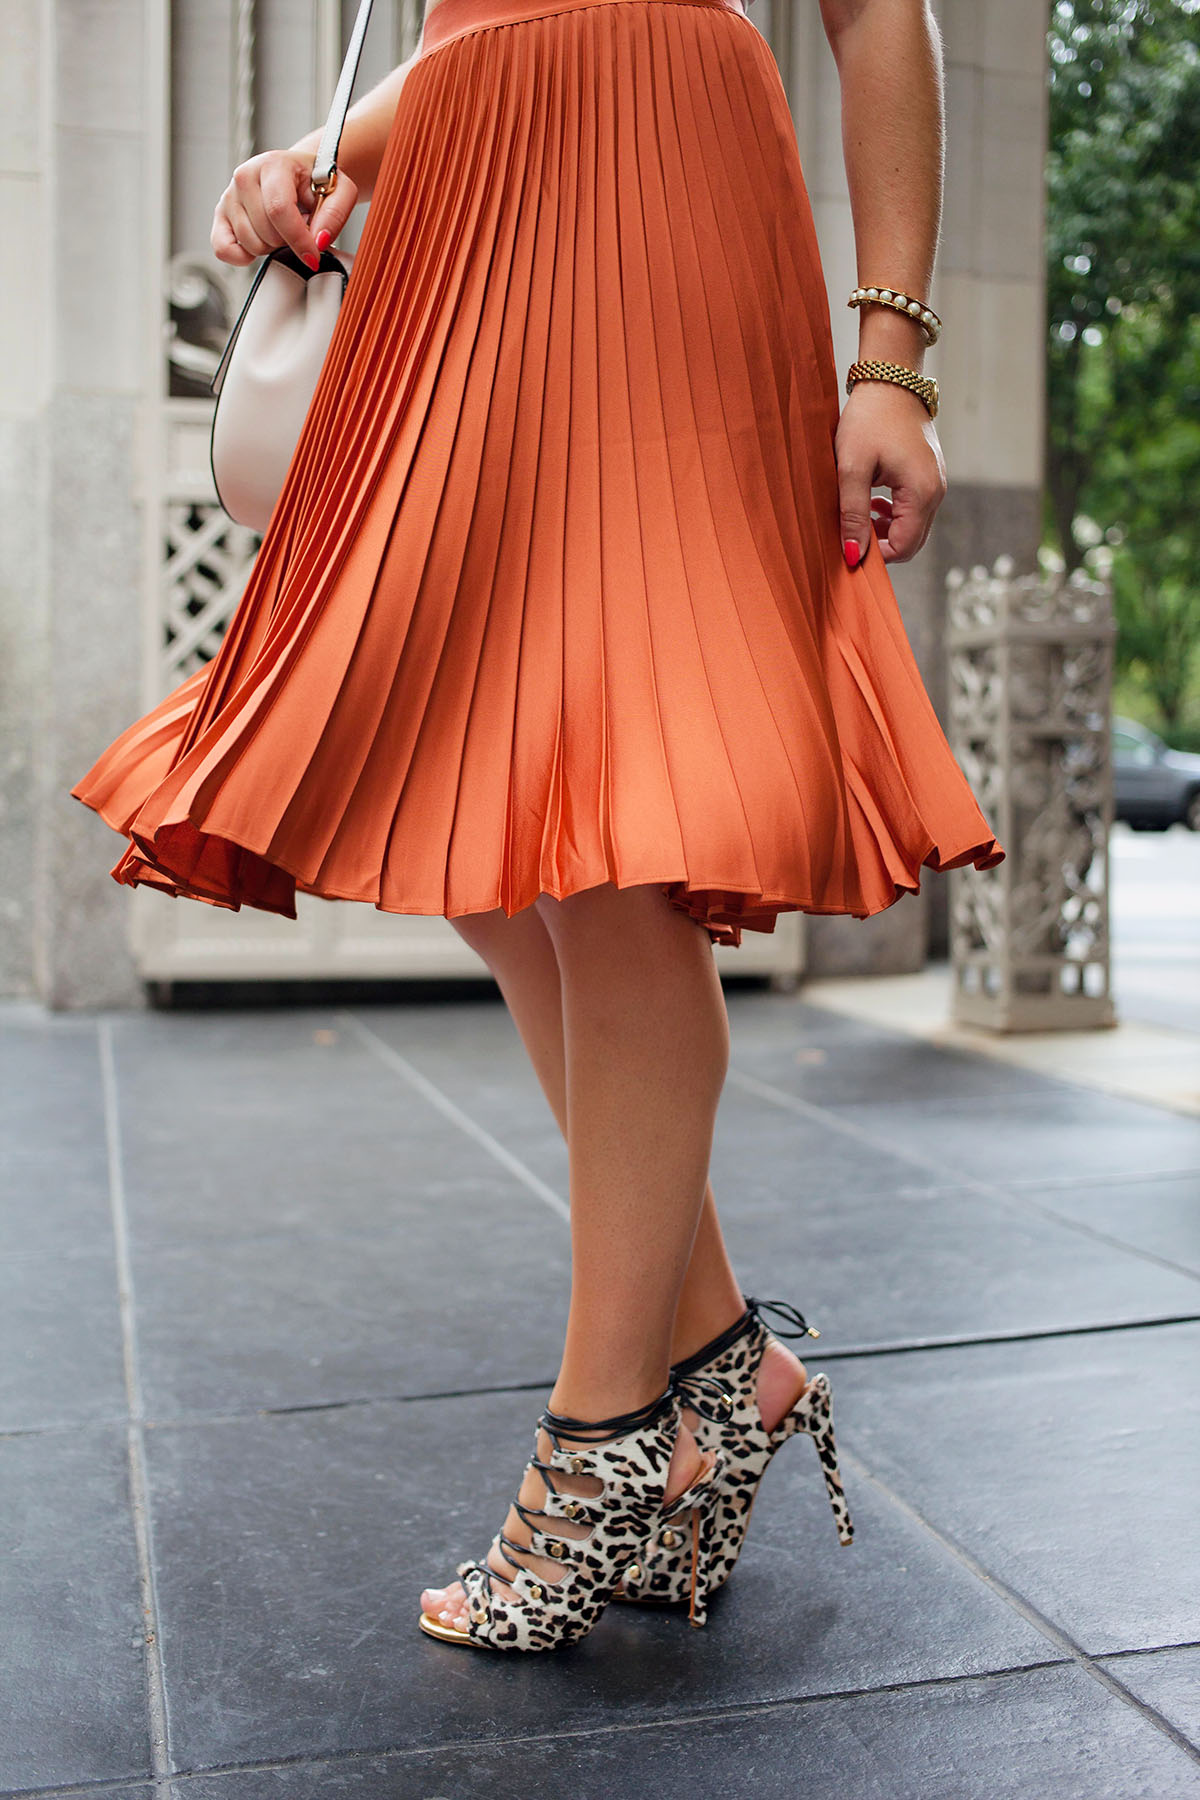 Pleated skirts are one of fall's hottest trends! Blogger Bows & Sequins styles her rust-colored skirt with lace-up leopard heels and a round crossbody bag.